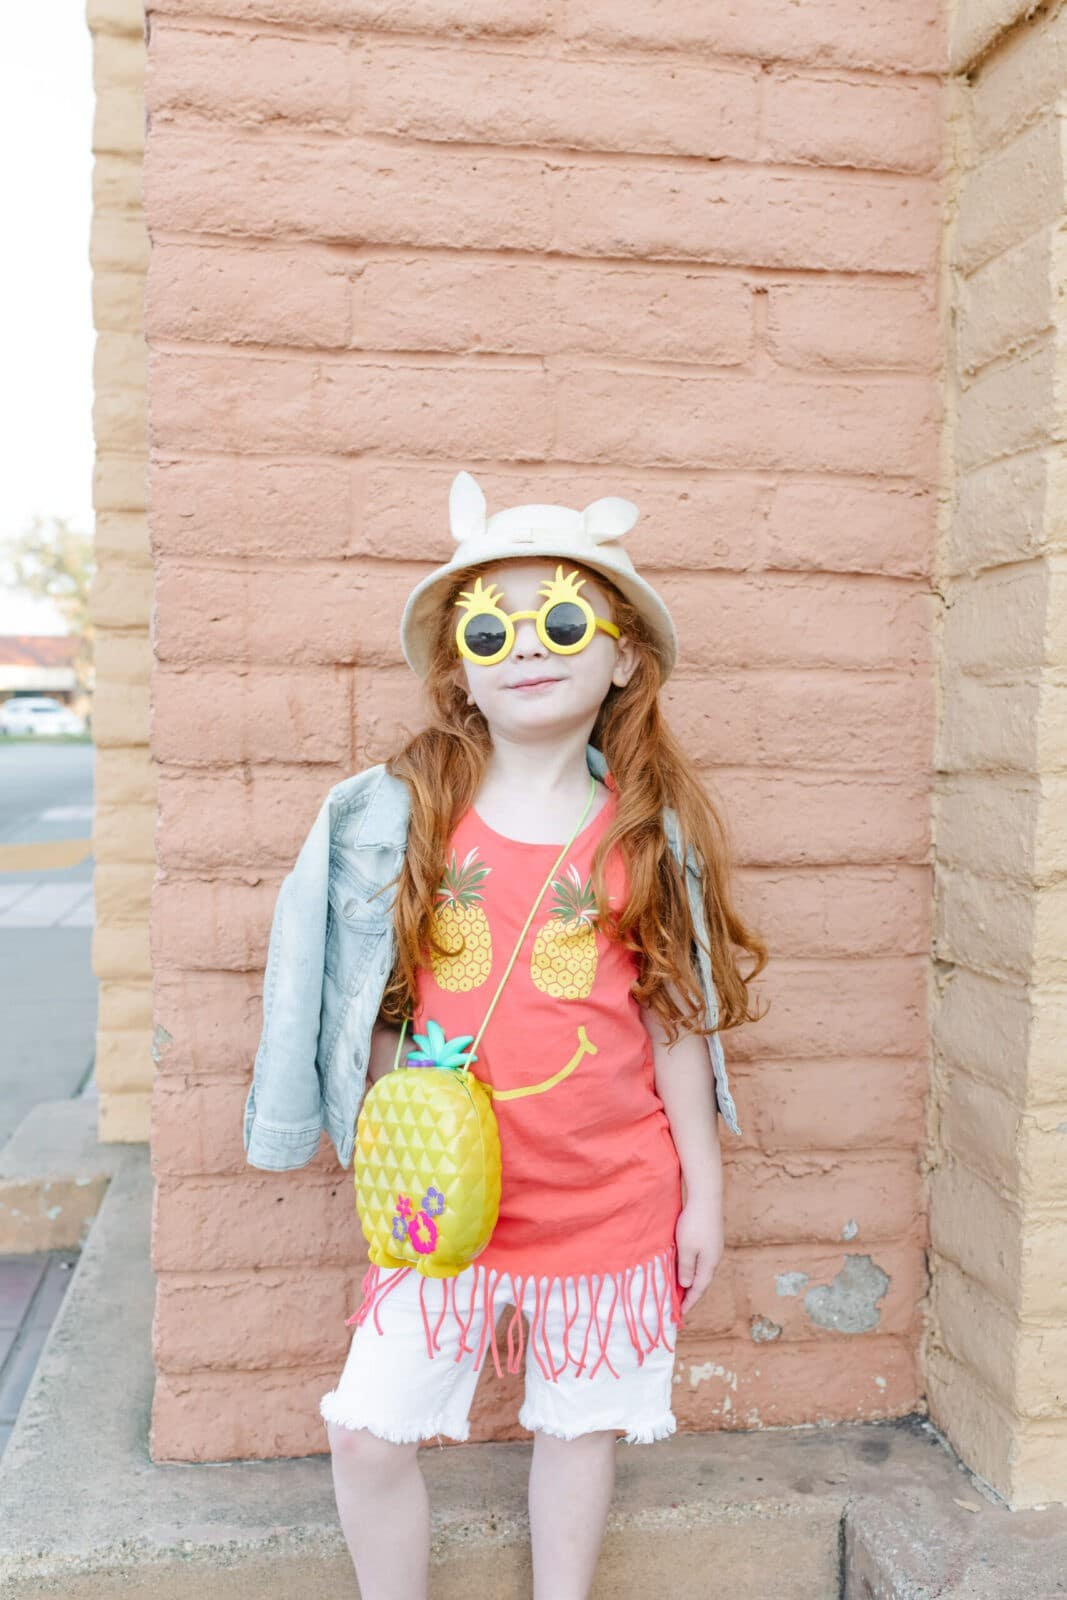 Pineapple Polly Pocket Purse